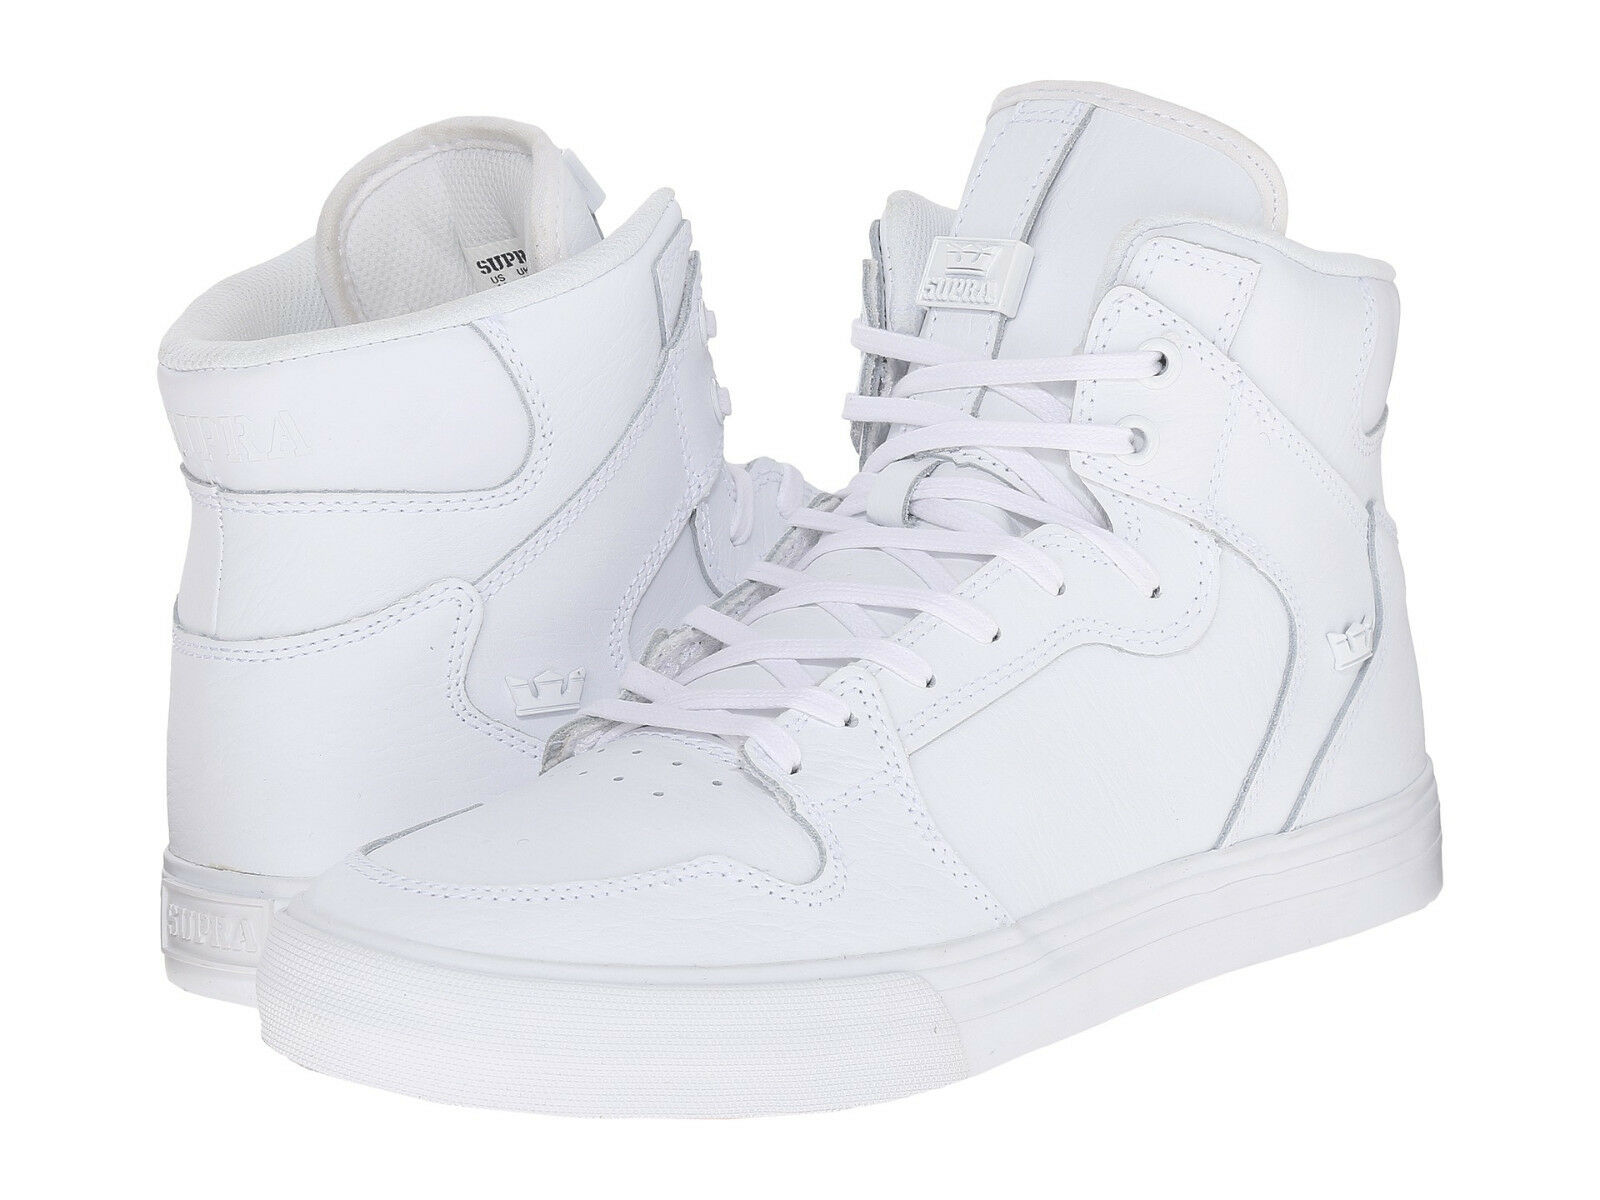 NEW WHITE NEW SUPRA VAIDER WHITE WHITE NEW LEATHER SURF SNOW SKATEBOARD SPORTS SHOES 8 f8a867